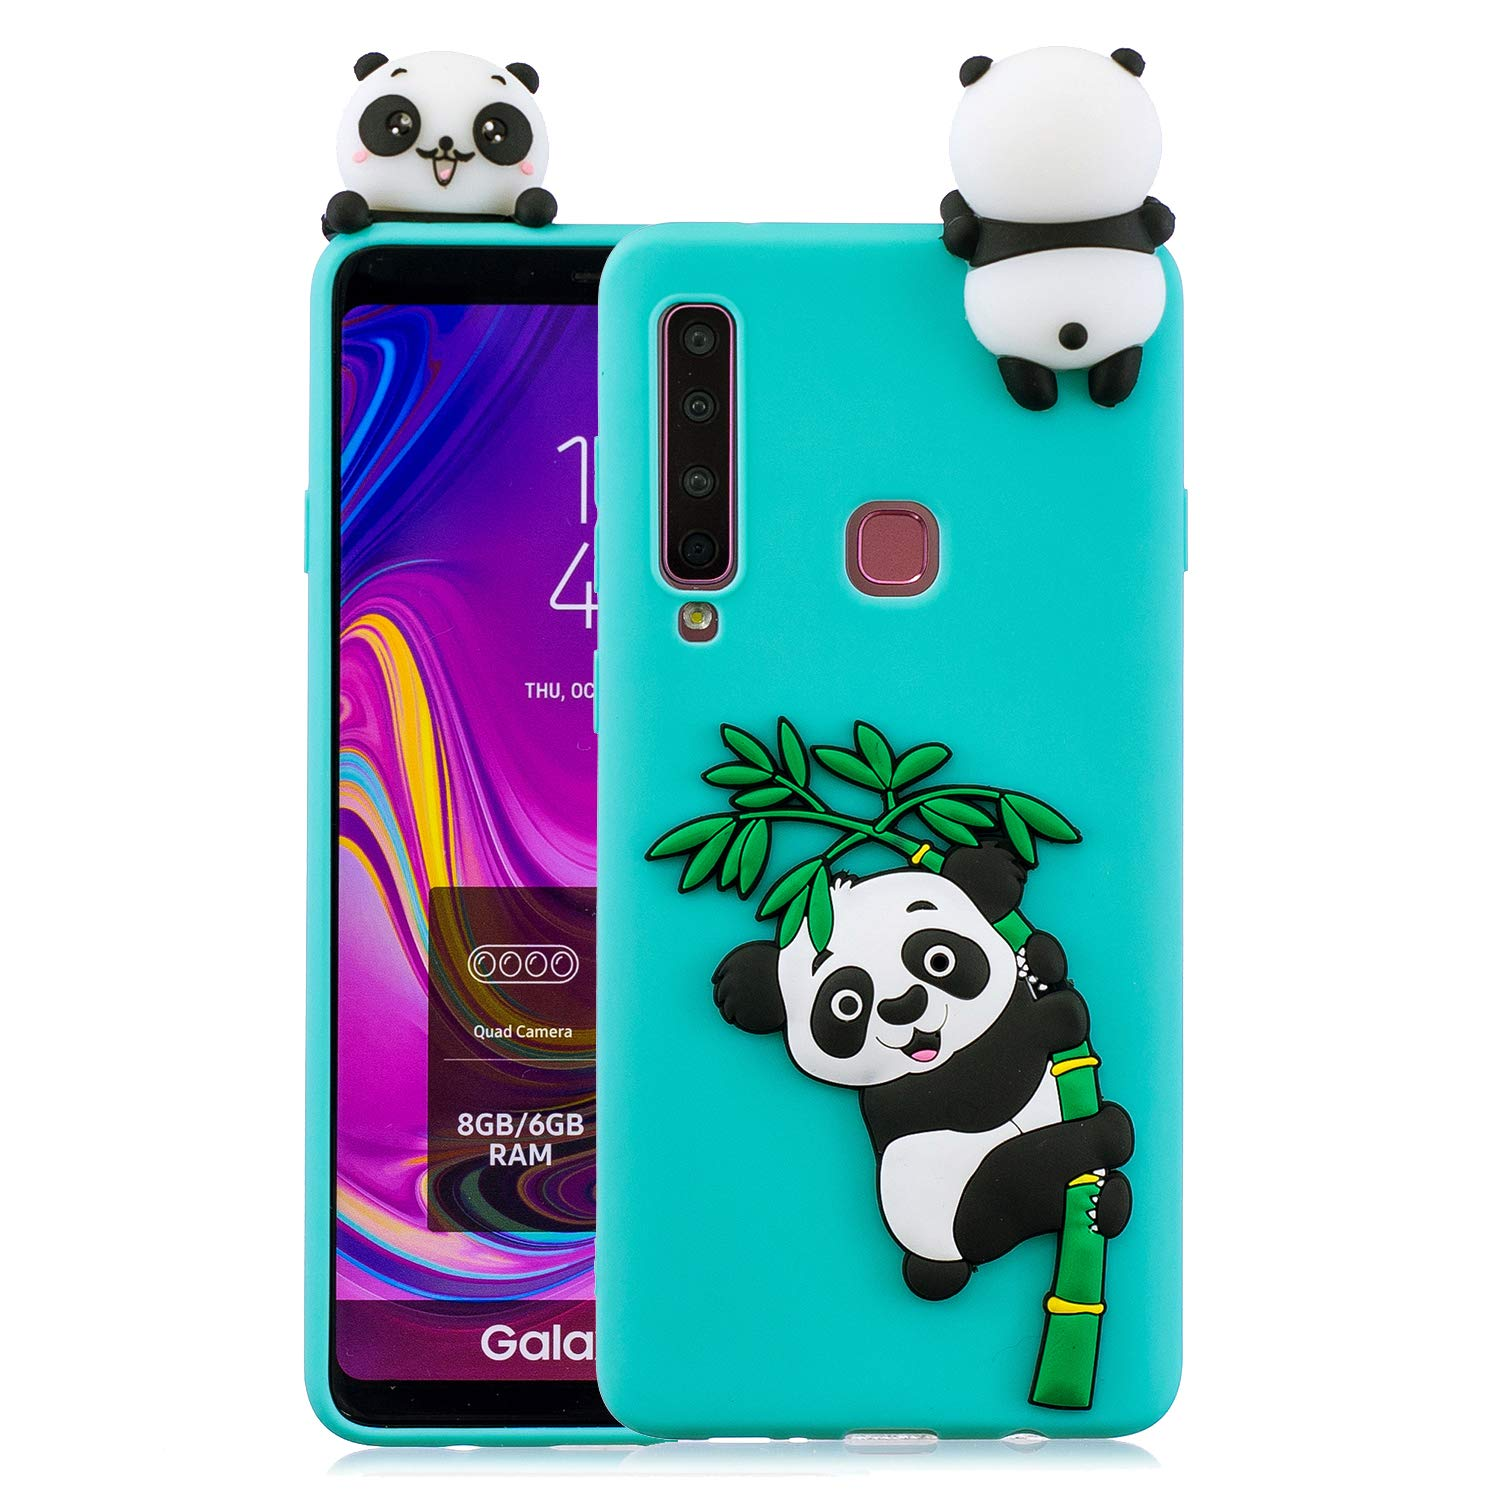 ZCXG Compatible with Samsung Galaxy A9 2018 Case Panda Black Cute Animal Silicone Gel Soft Flexible Shockproof Phone Protective Rubber Cover 3D Slim Fit Ultra Thin TPU for Samsung Galaxy A920